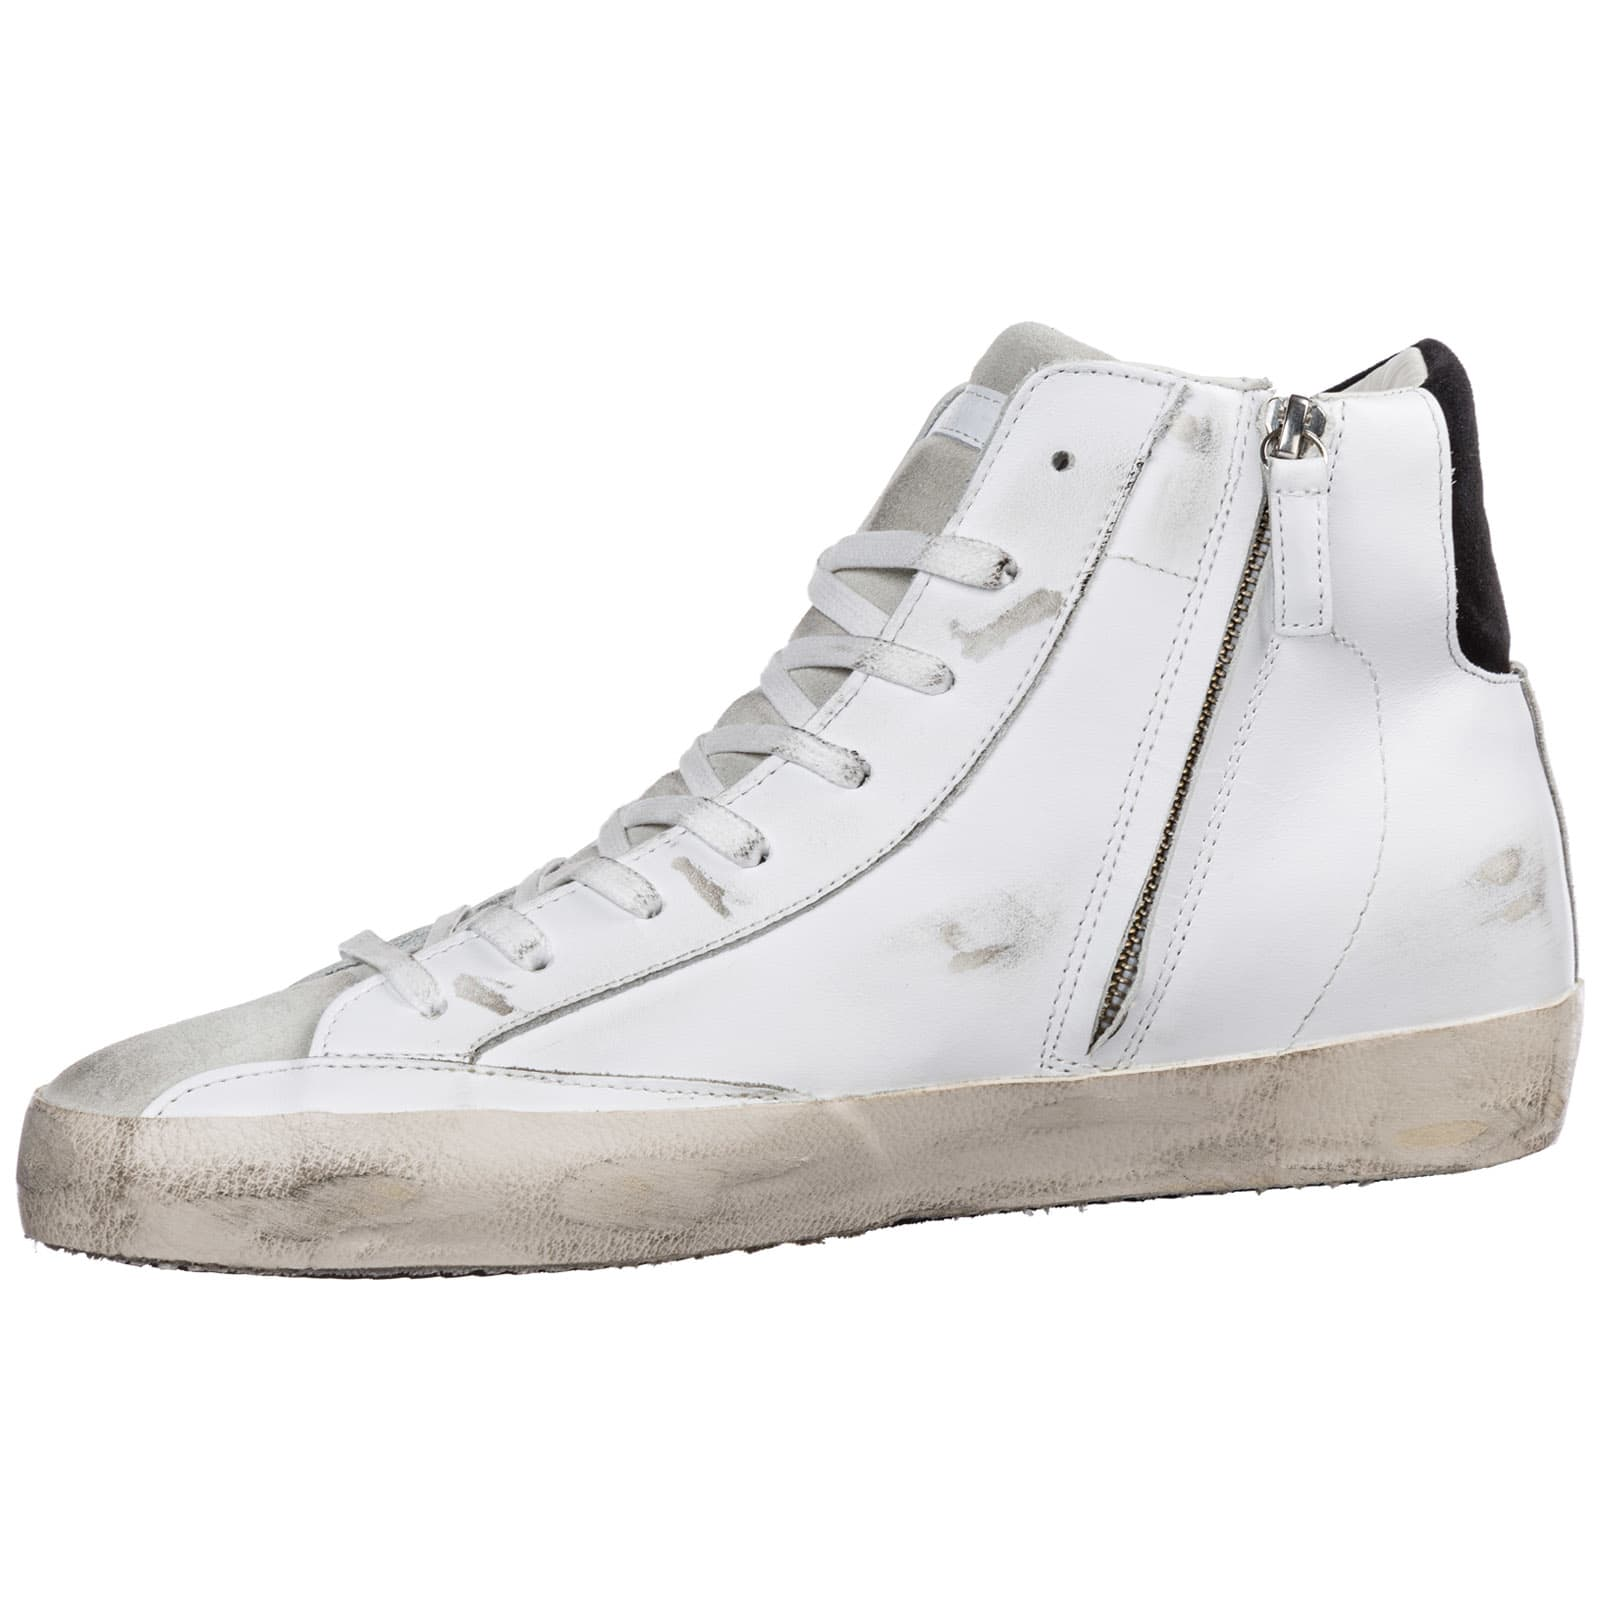 philippe model high top sneakers